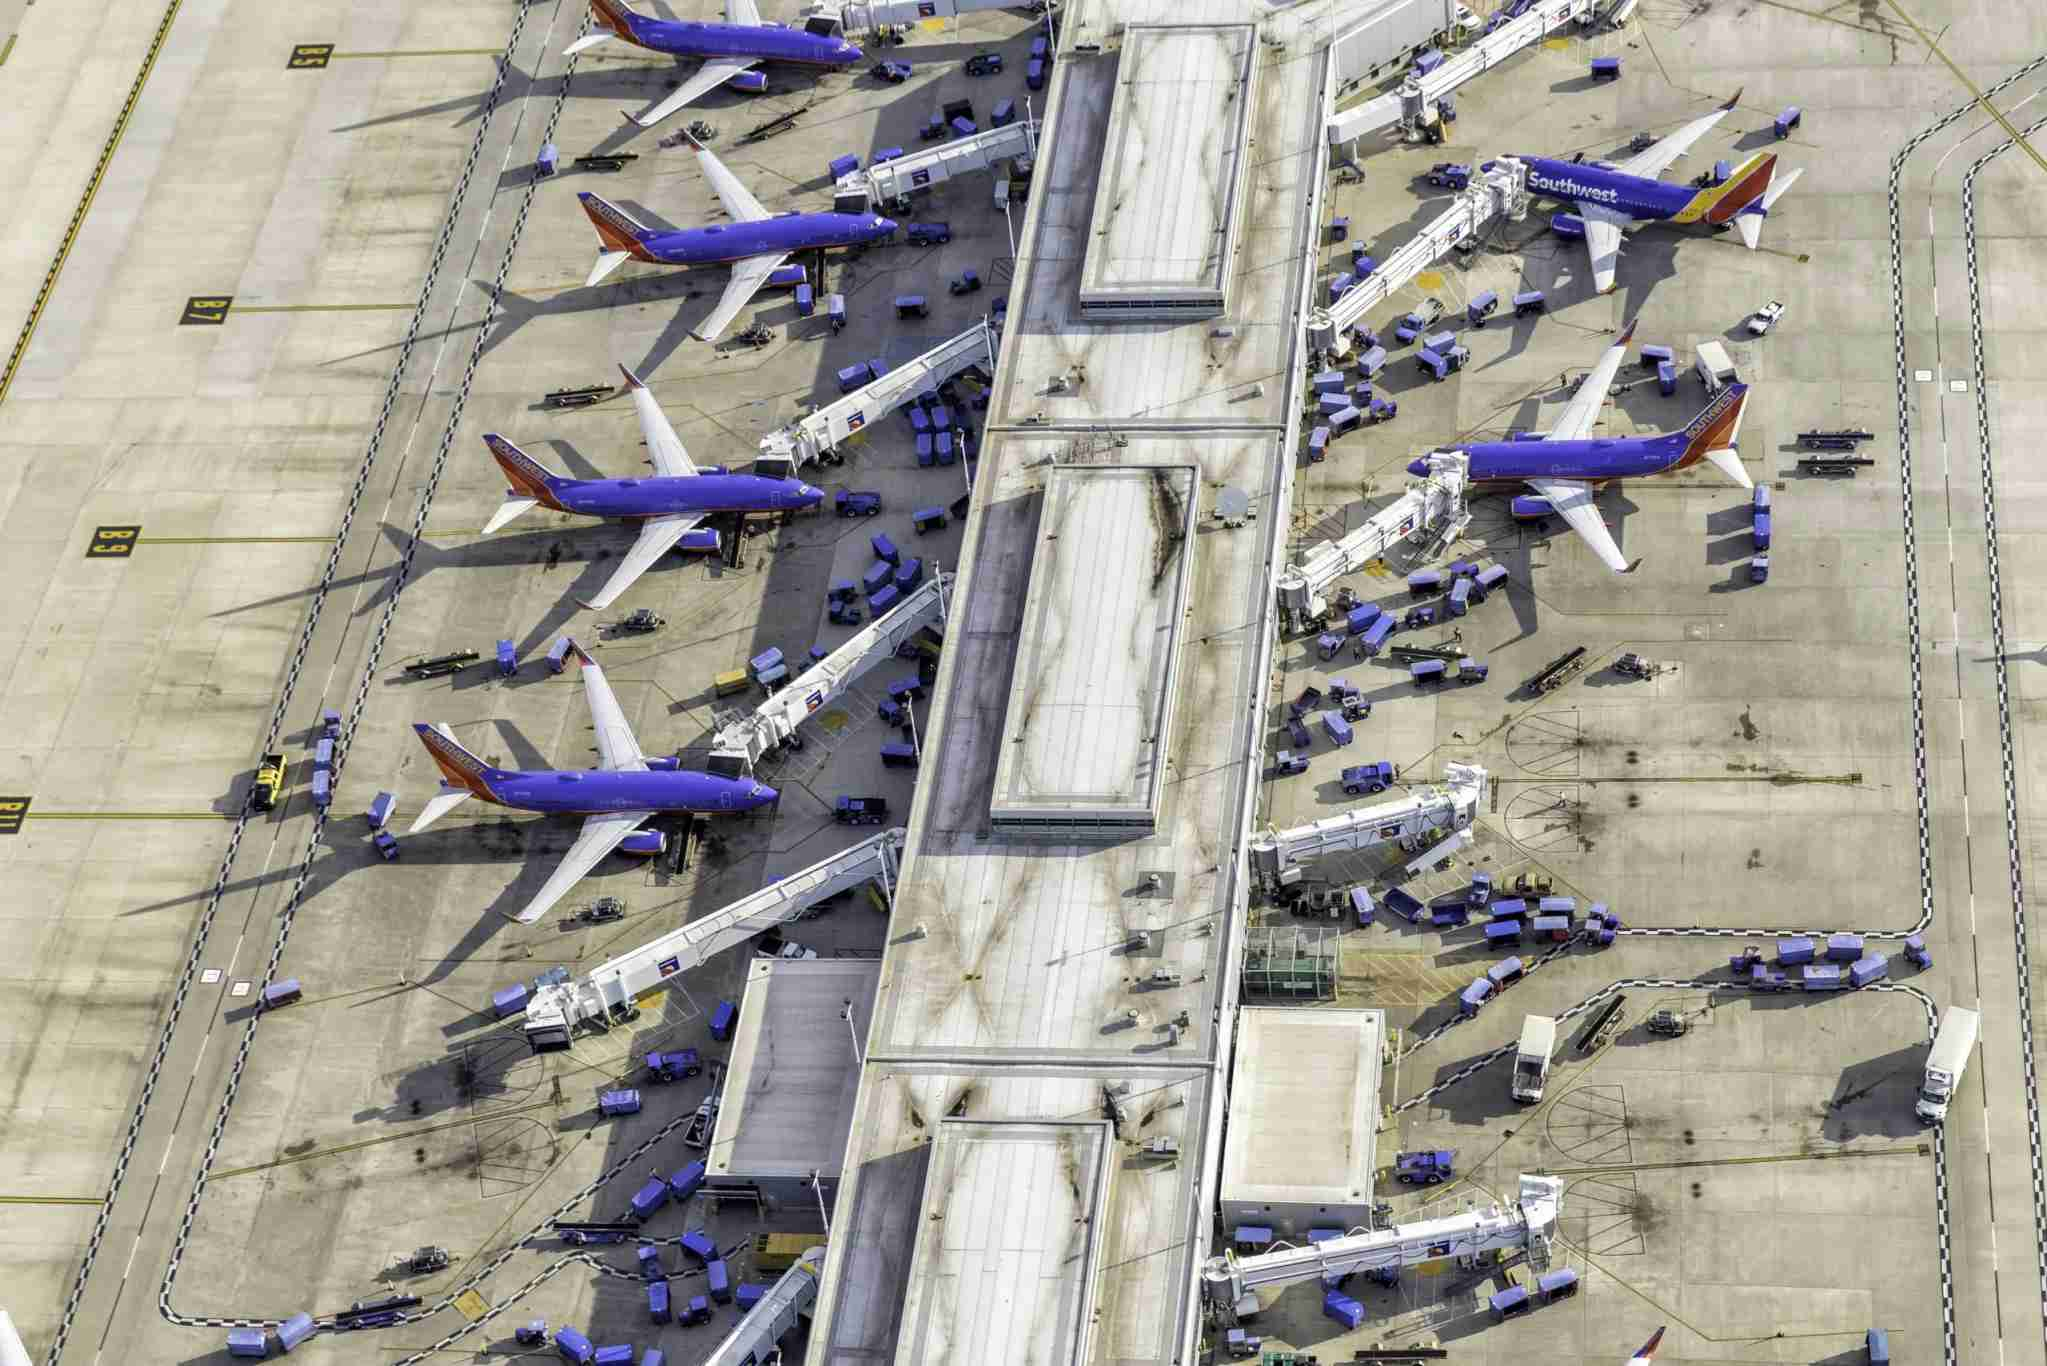 Southwest planes at MDW from the sky